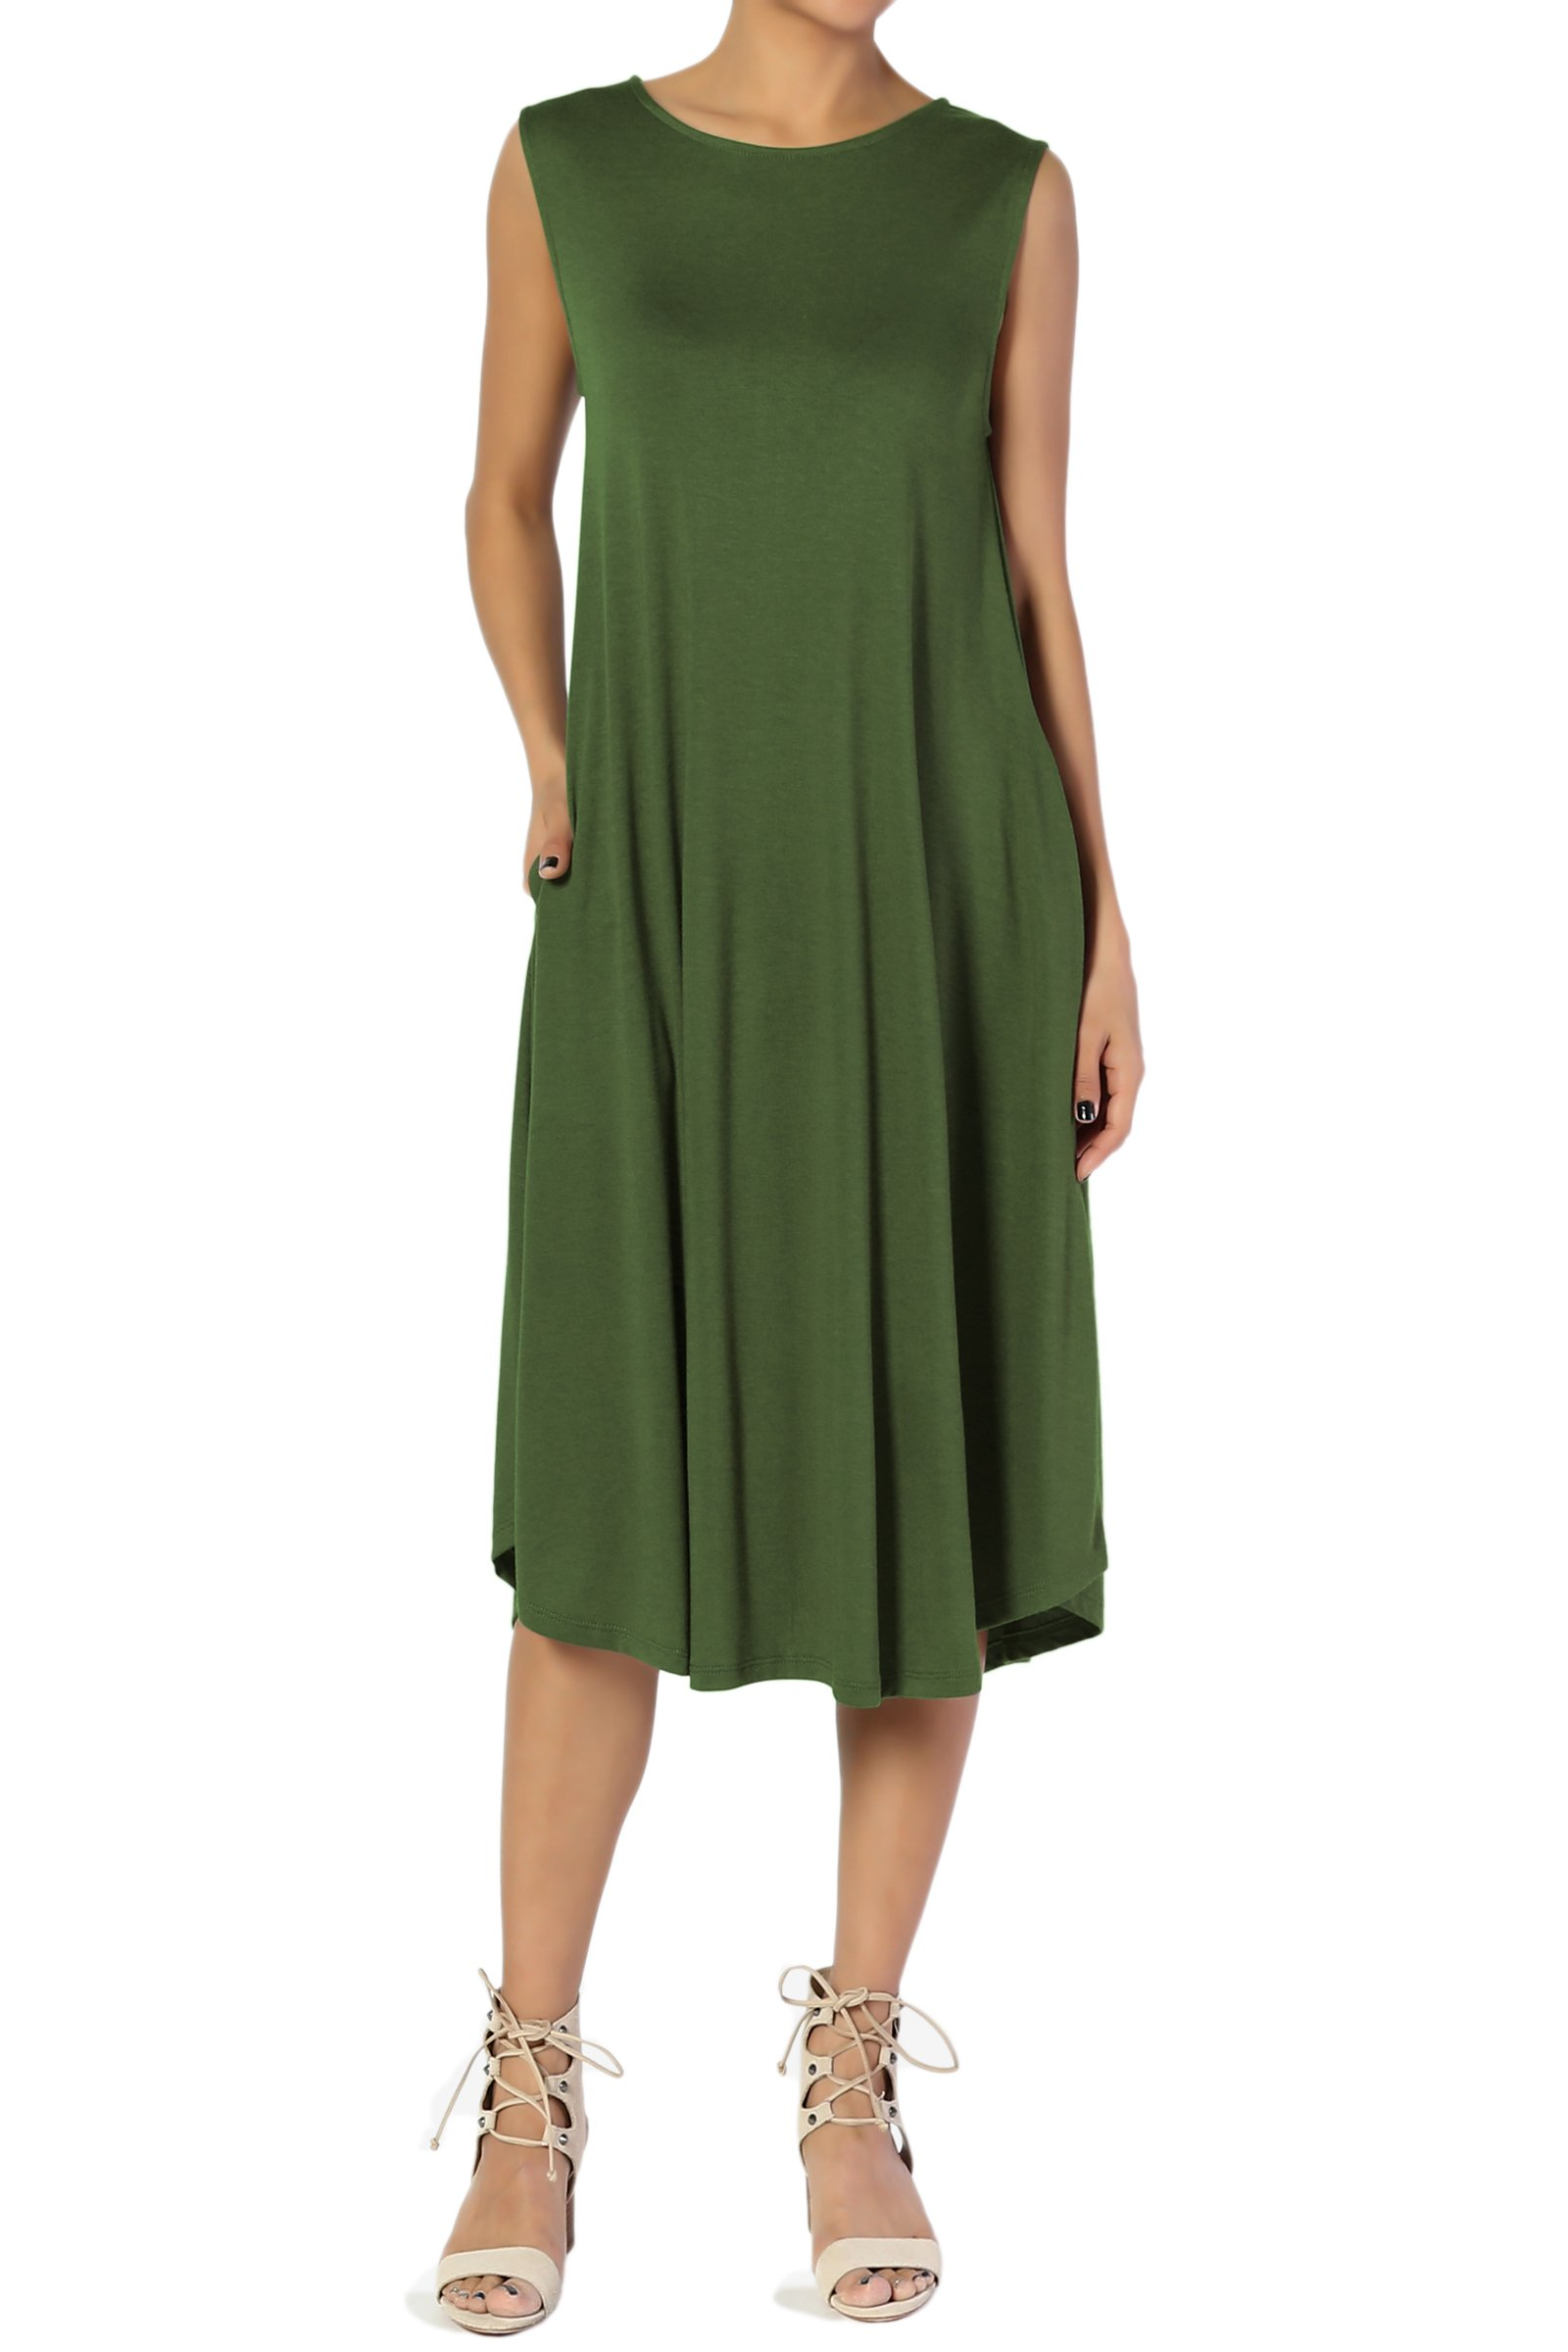 TheMogan Women's Sleeveless Pocket A-line Fit and Flare Midi Long Dress Army Green 1XL